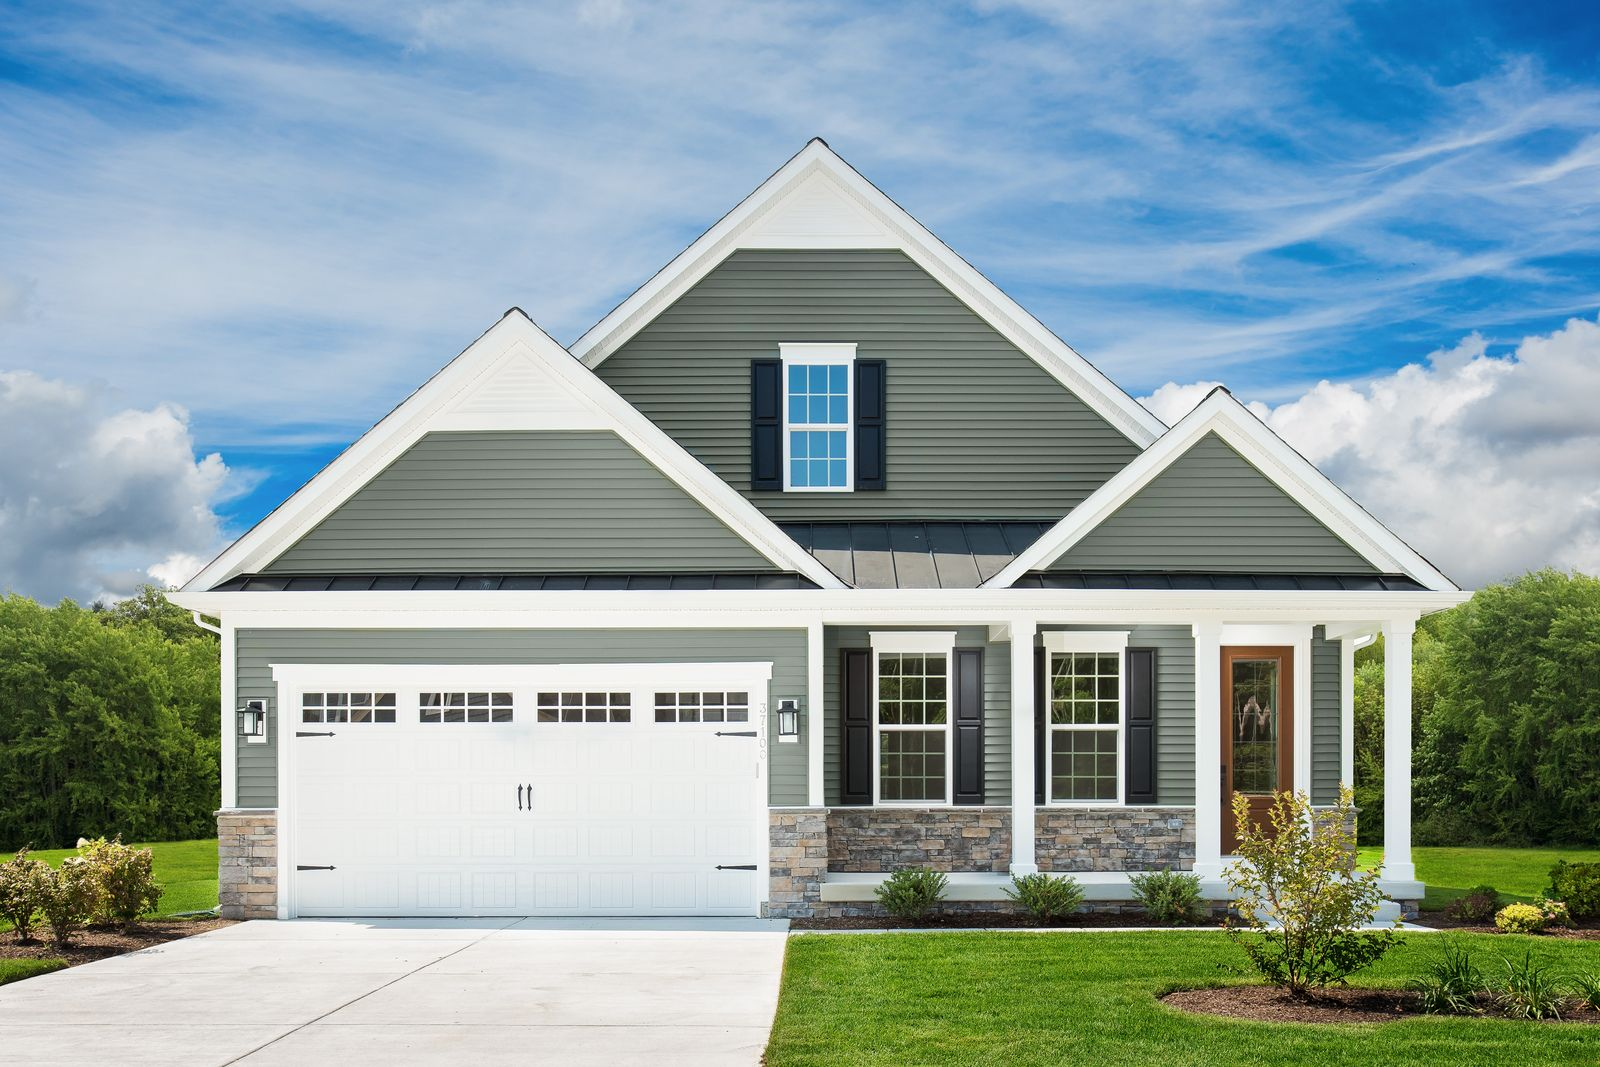 Welcome home to Laurel Landings Ranch Homes:The only lakeside community offering low-maintenance ranch homes with high-end inclusions. Less than 1 minute to Rt. 19 & 2 miles to I-79.Click here to schedule an appointment.